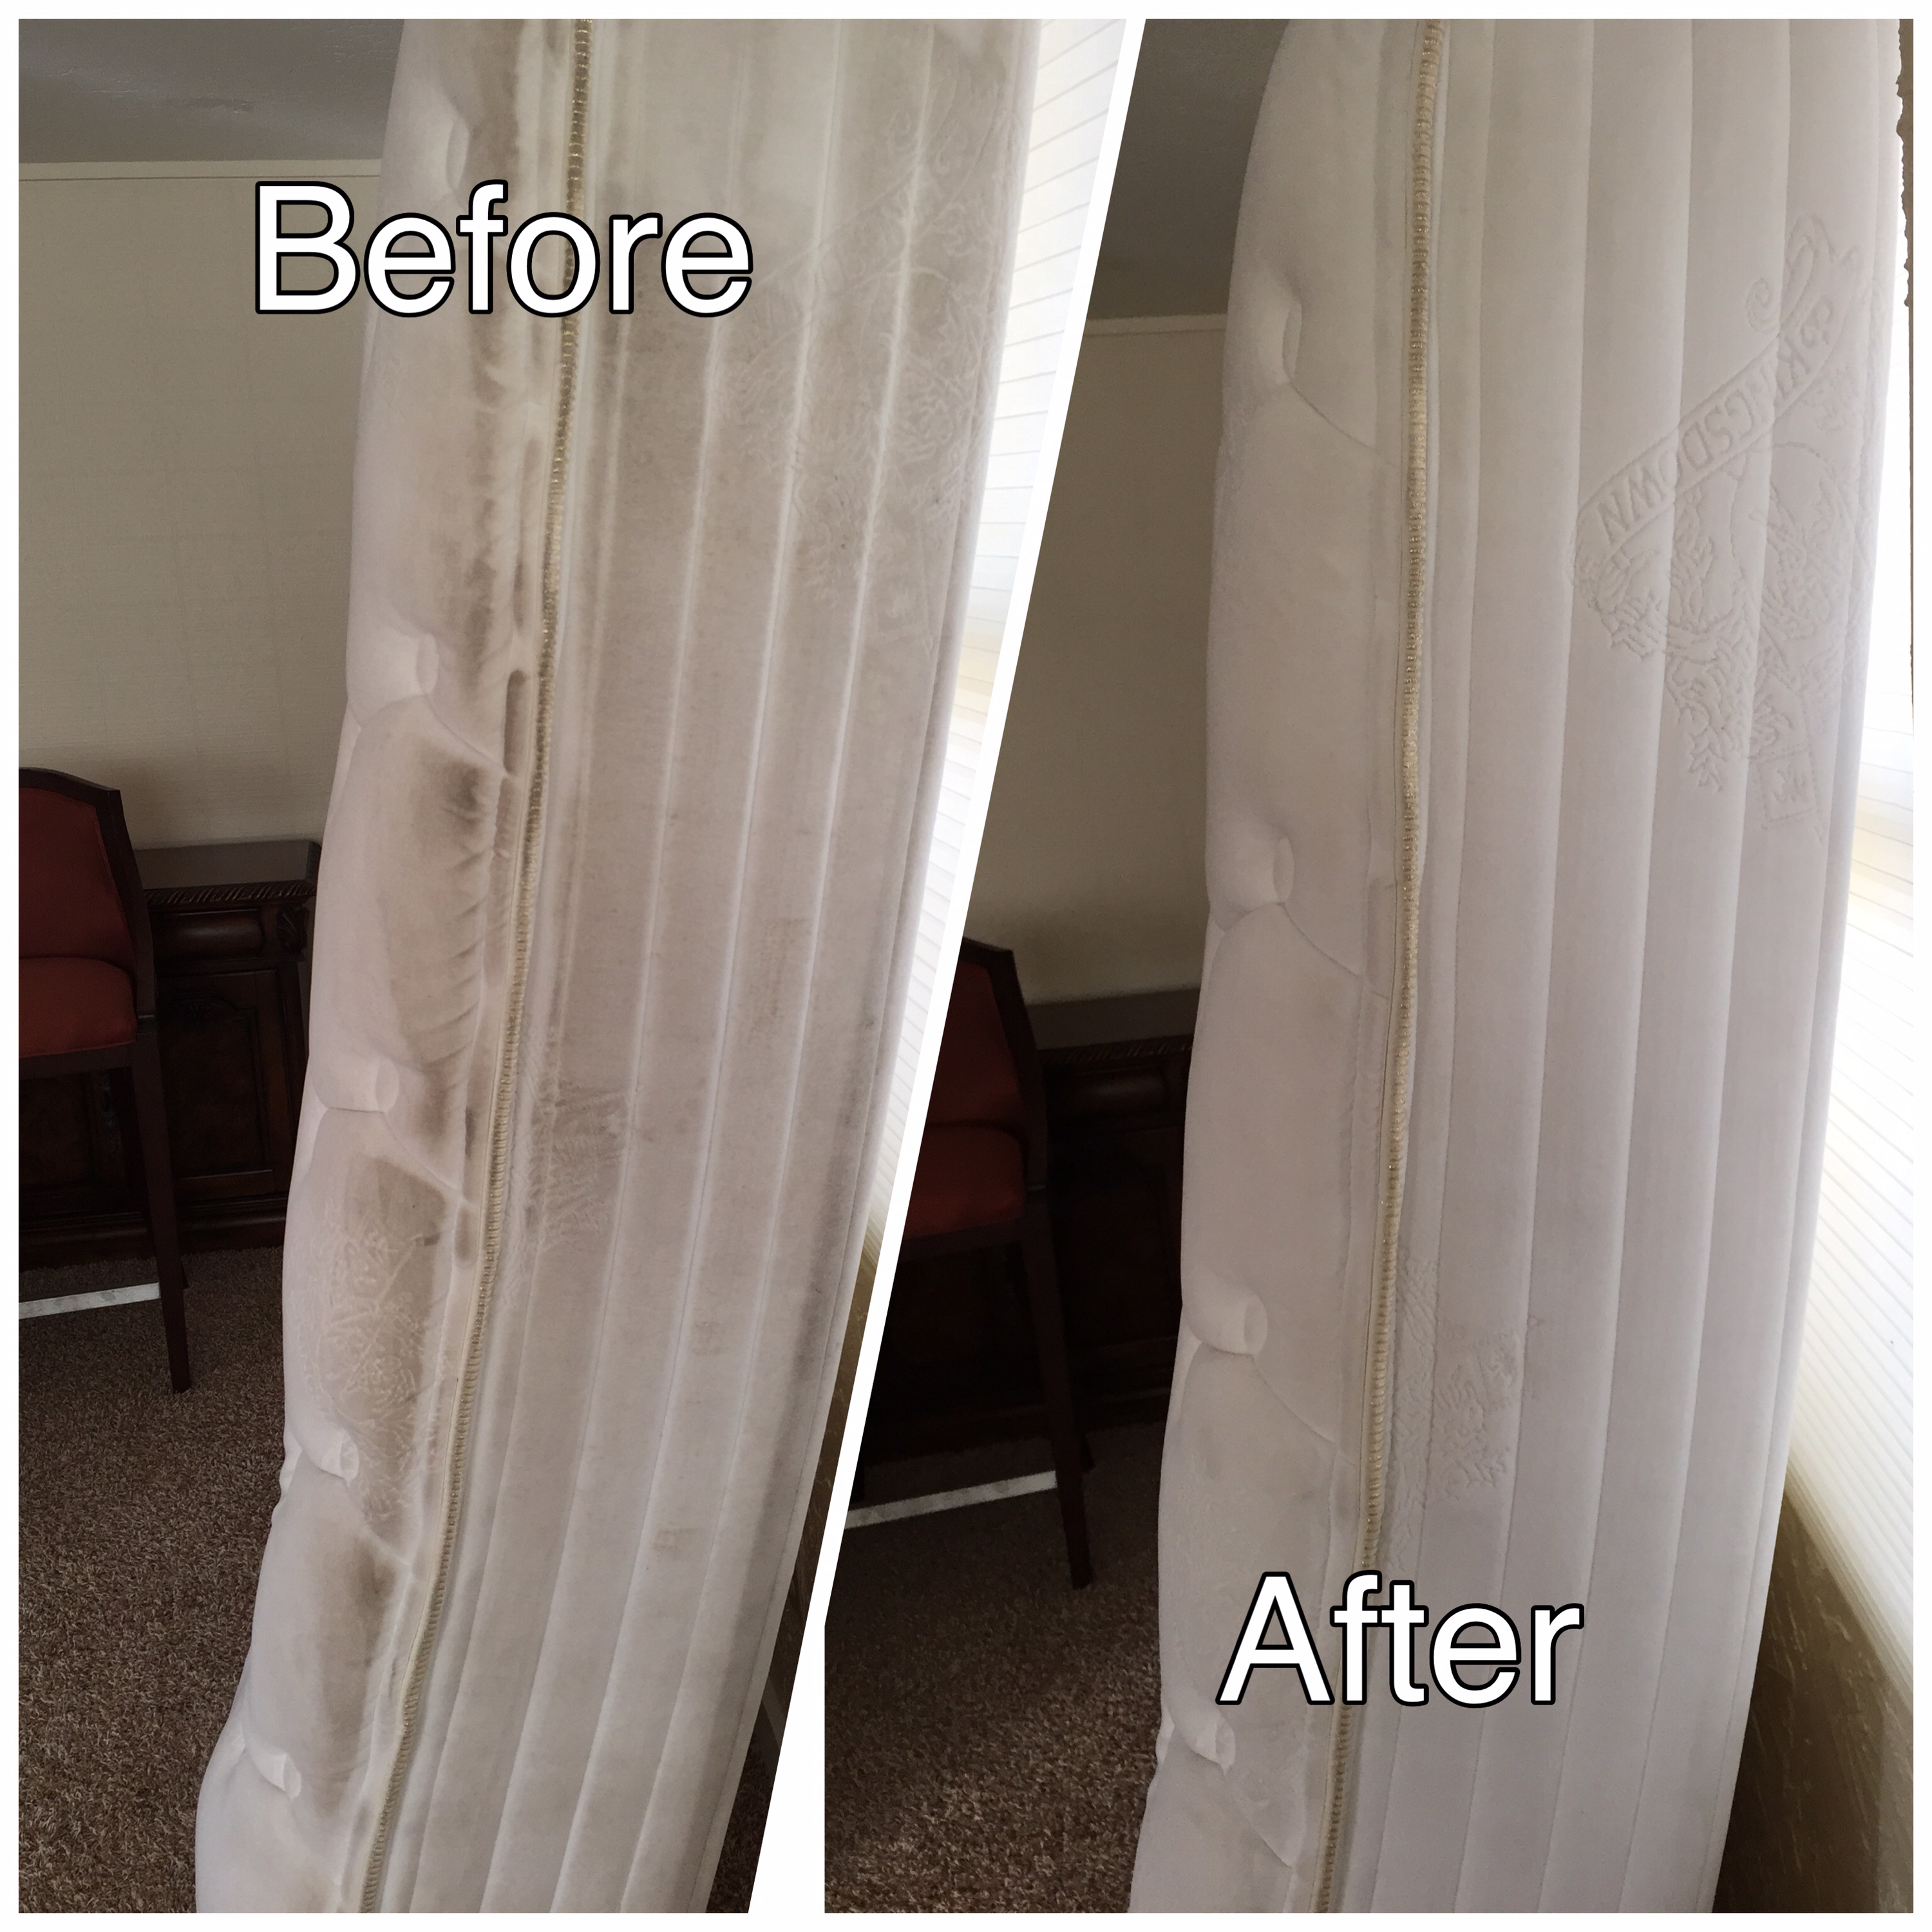 Mattress Cleaning Before and After Photos